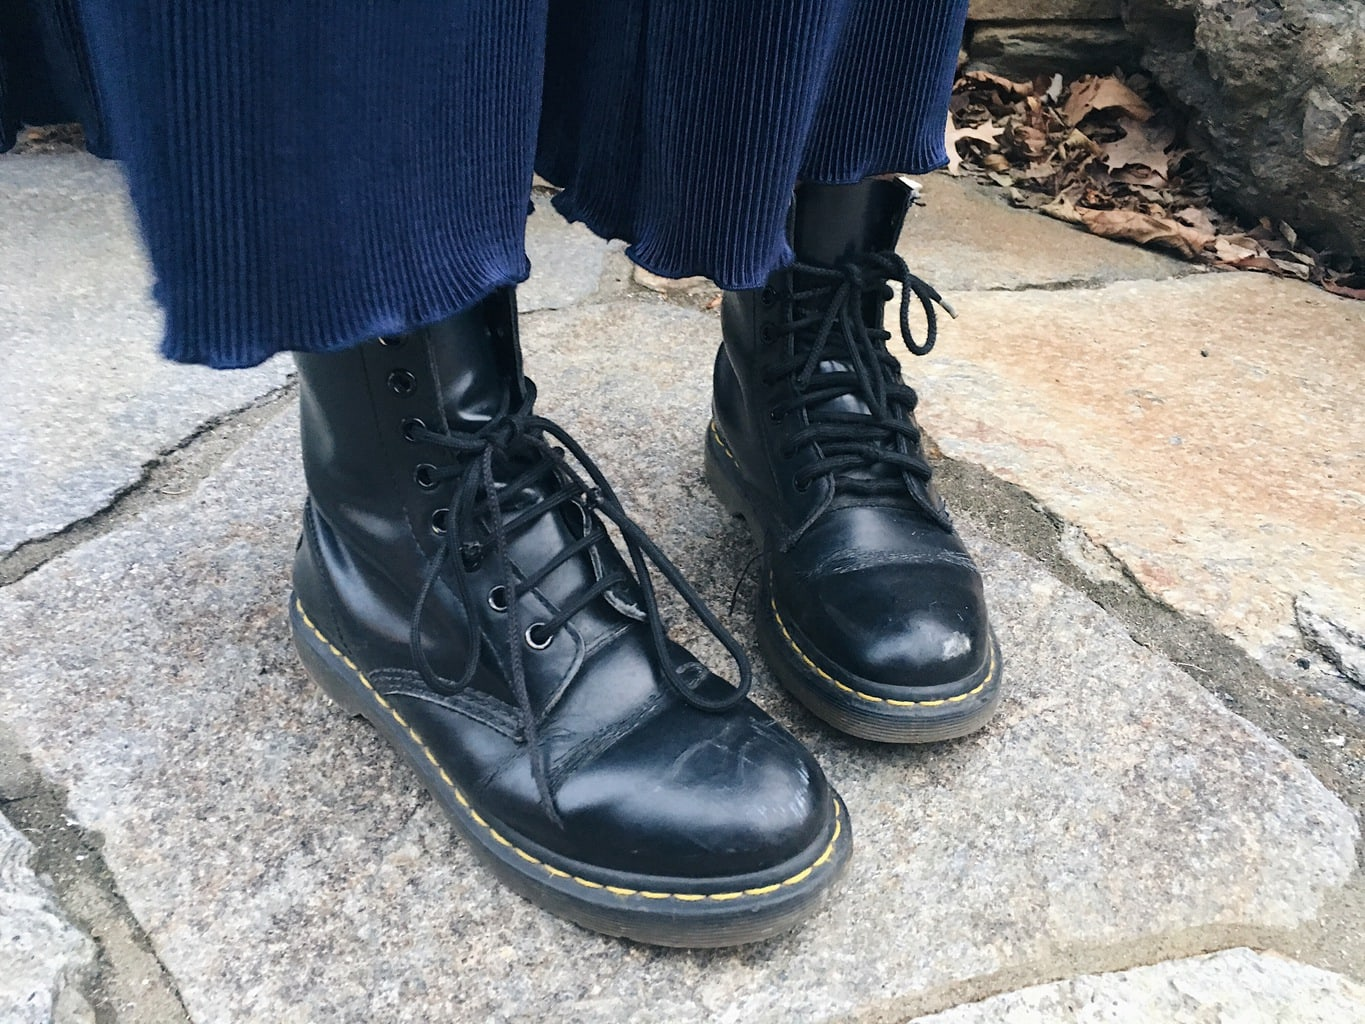 Caeli shows off her rugged black Doc Martens with rubber soles and black laces.